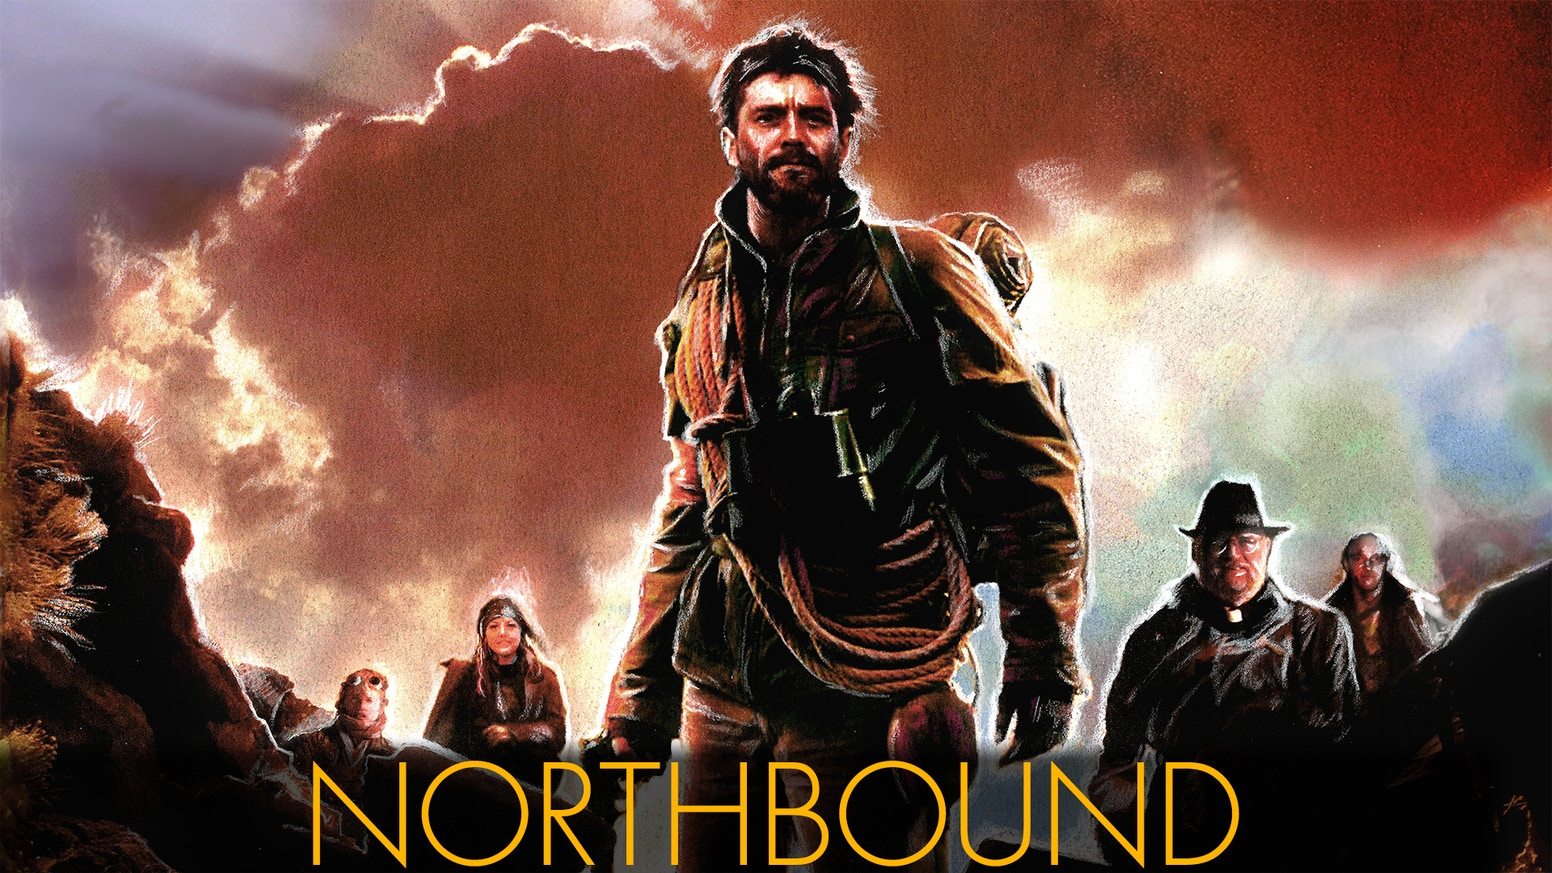 Follow our Michigan-Based team as we create the next chapter of a post-apocalyptic webseries that will lead directly into the feature film NORTHSTAR.